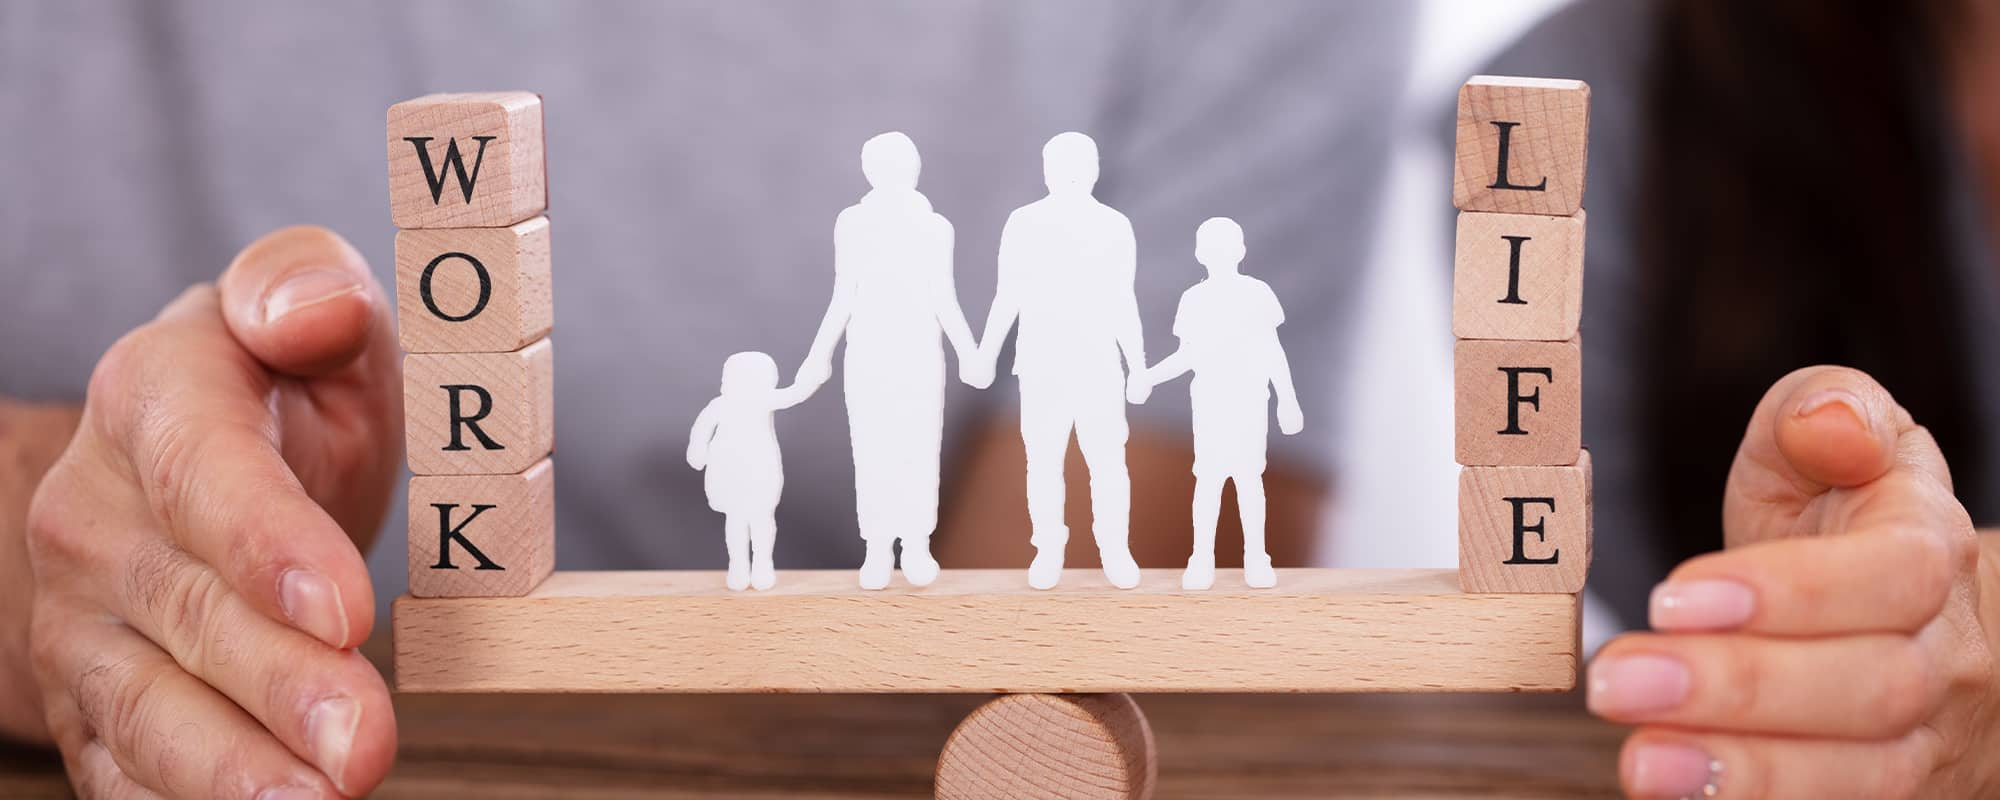 Managing Work And Family: The Benefits Of Routines And Rituals